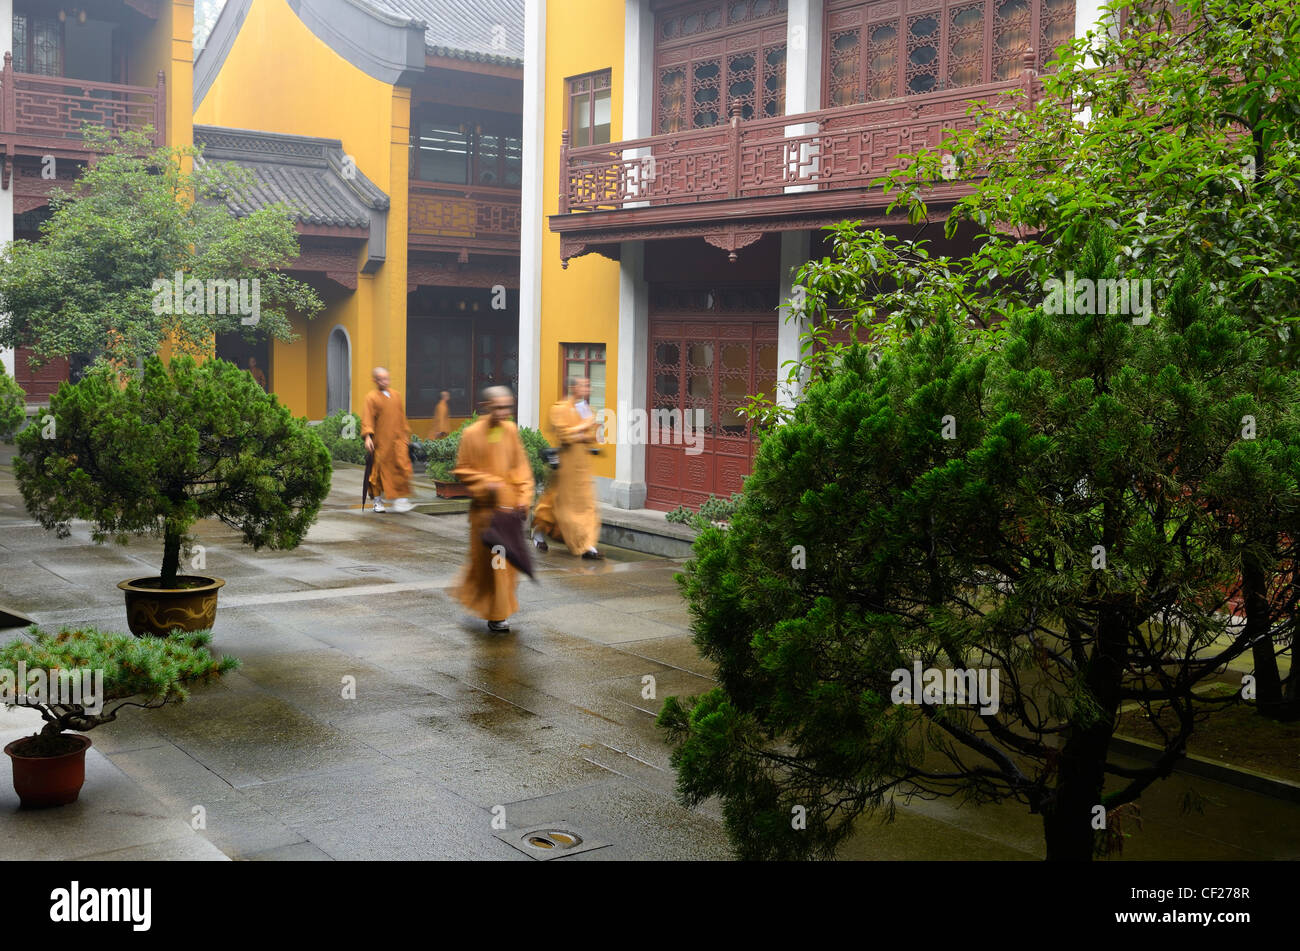 Buddhist monks with umbrella and cameras at the Ling Yin Temple in Hangzhou Peoples Republic of China - Stock Image